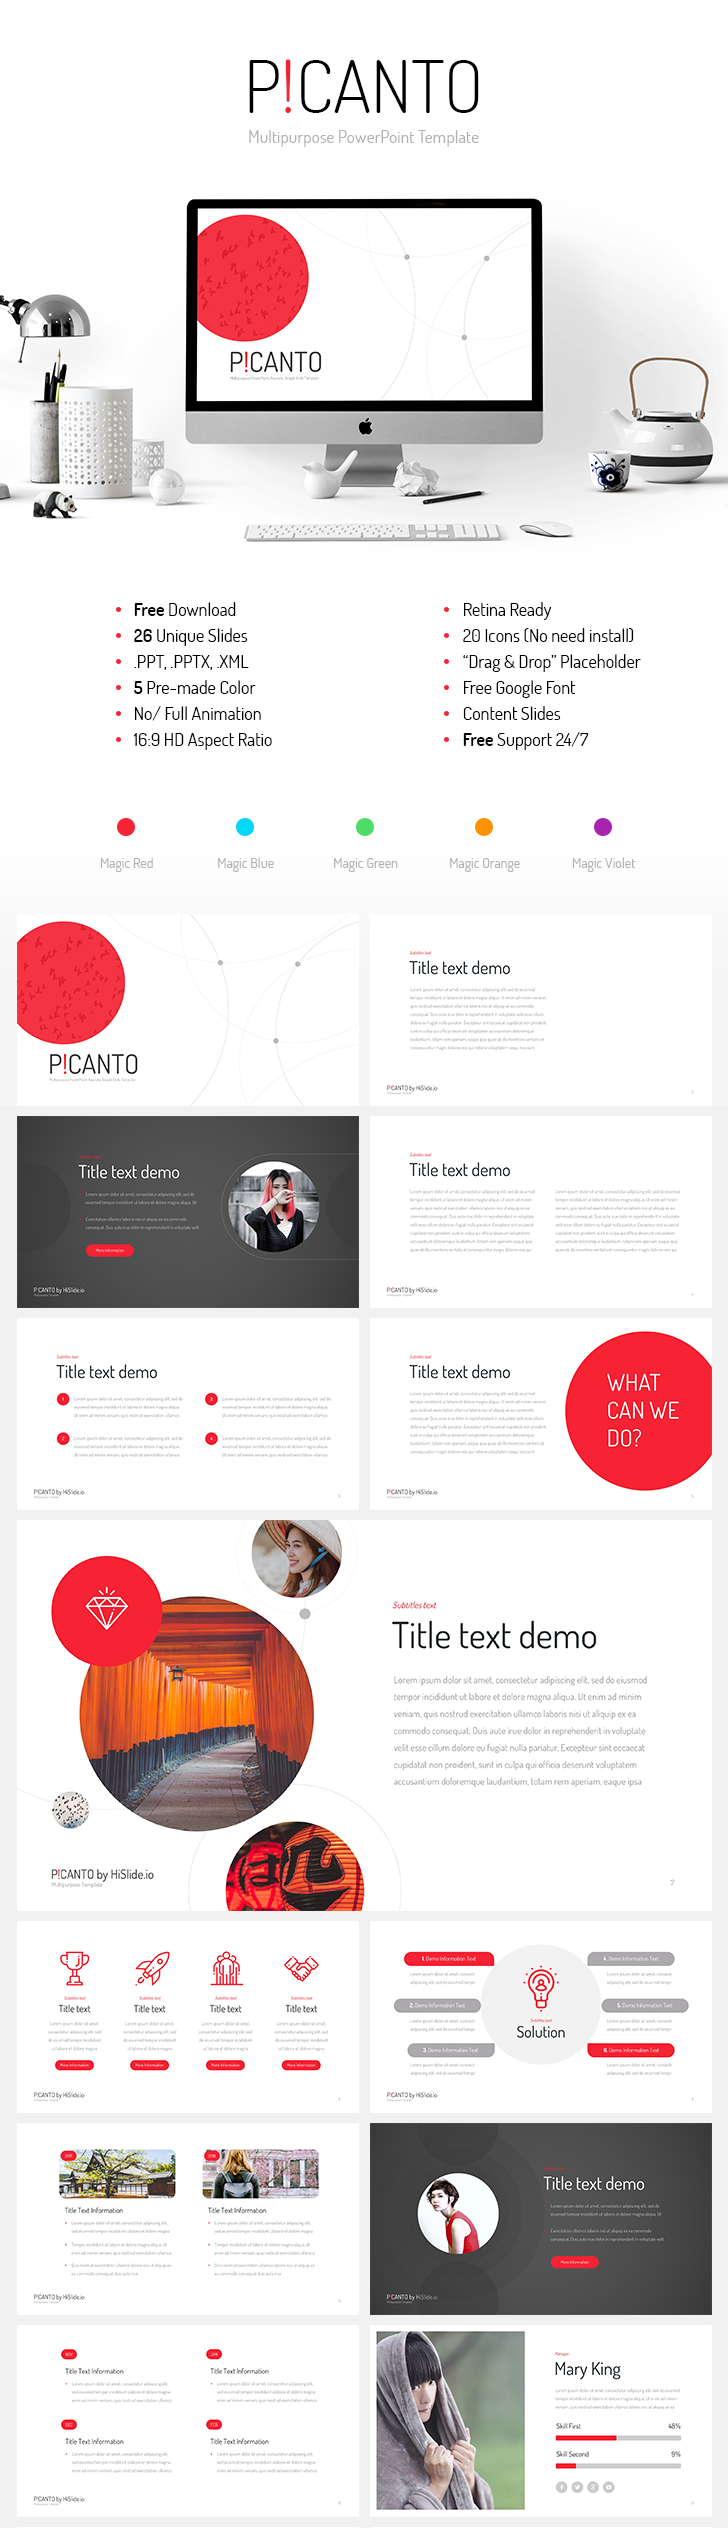 Picanto ppt template free download total 130 slides picanto ppt template free download toneelgroepblik